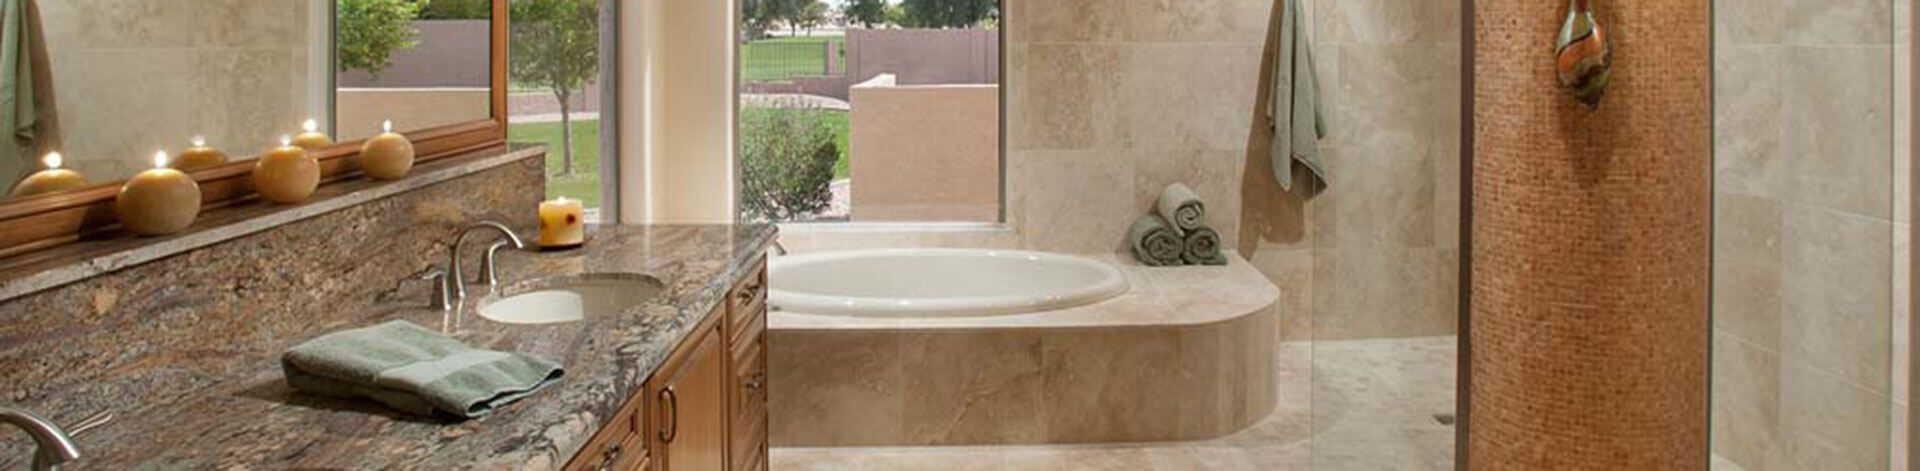 Phoenix Bathroom Remodel Cool Bathroom Remodeling In Phoenix & Scottsdale  Republic West Remodeling Decorating Inspiration